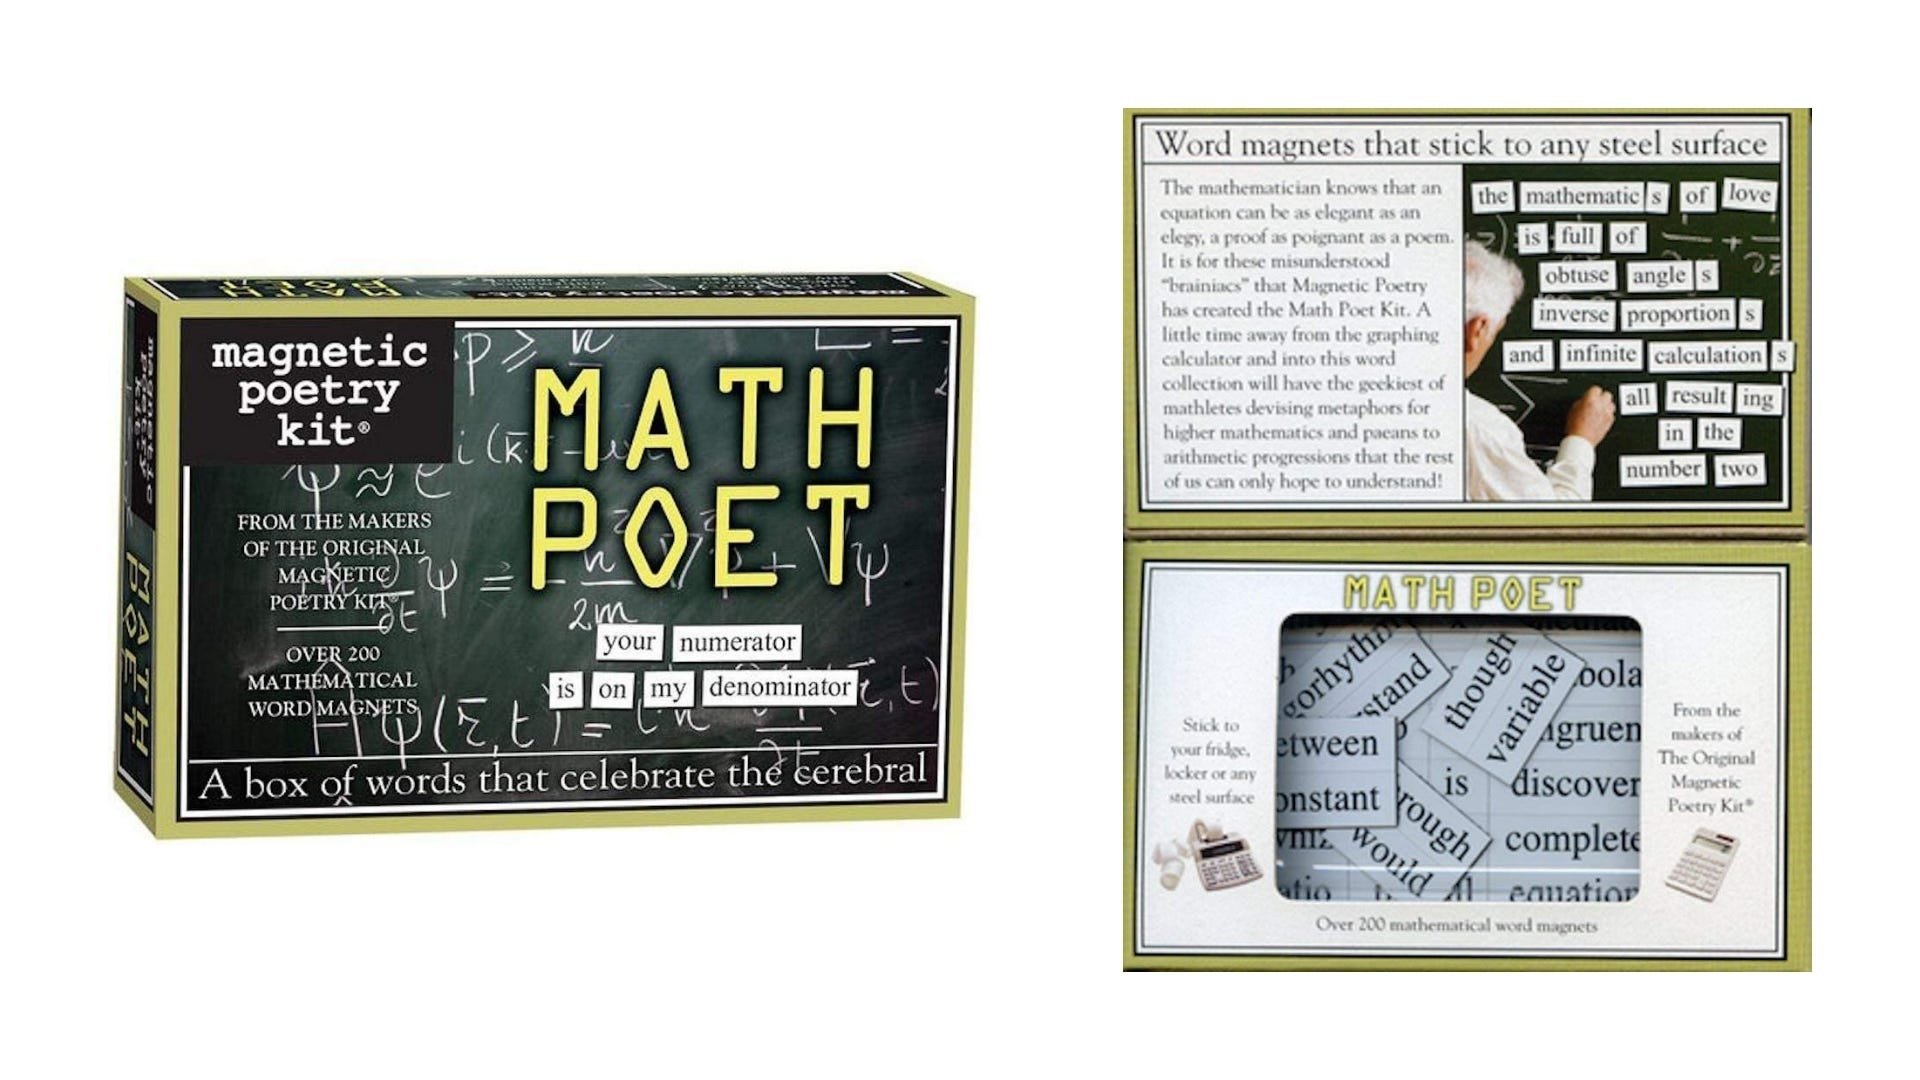 A front and inside view of the Math Magnetic Poetry kit